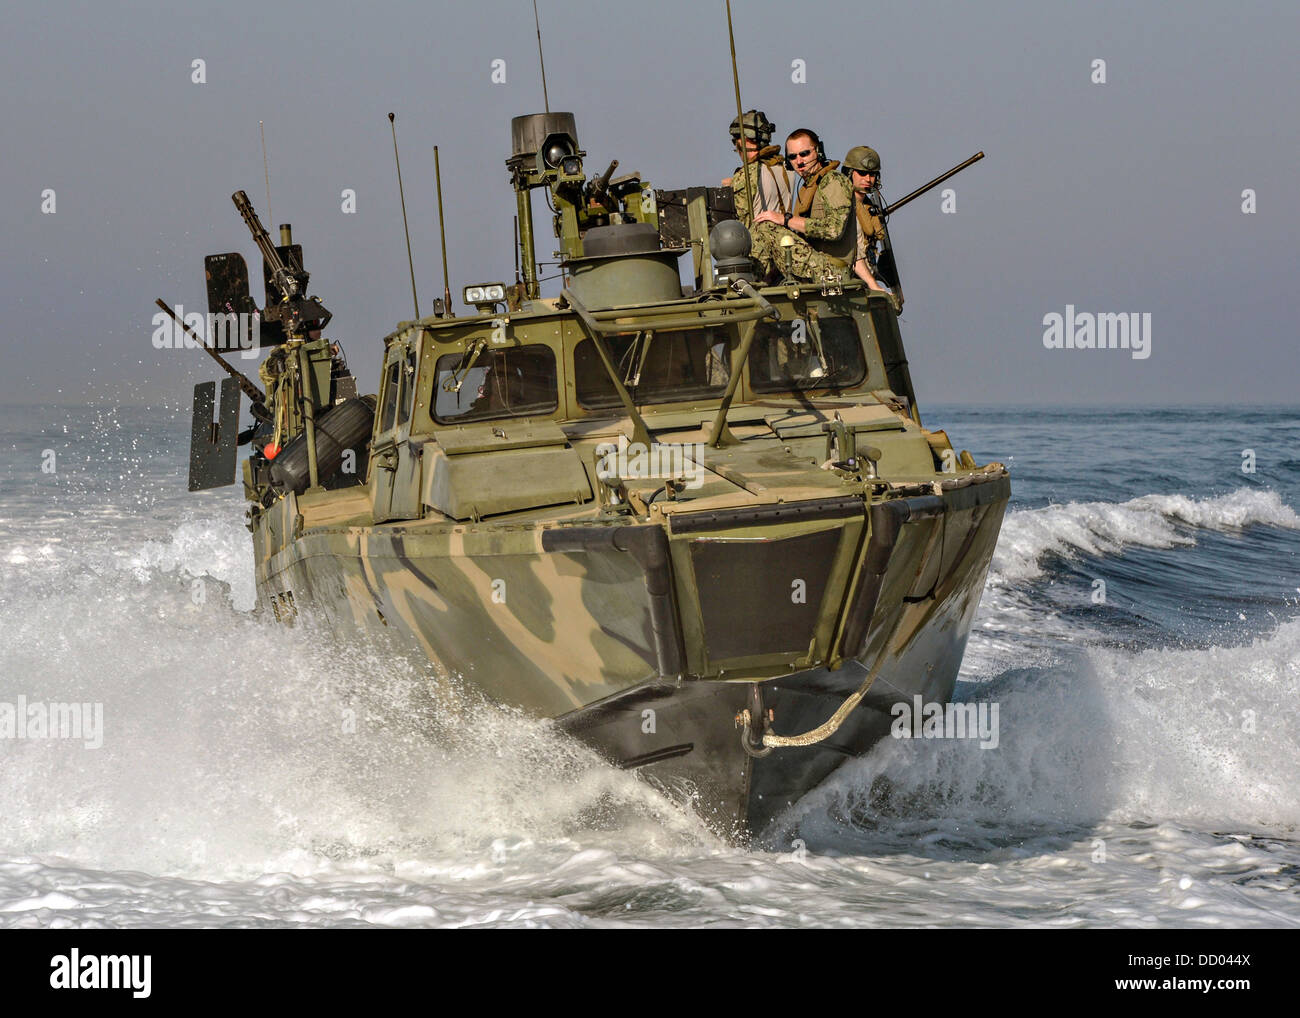 A US Navy Riverine Command Boat patrols during exercise Spartan Kopis August 12, 2013 off the coast of Bahrain. - Stock Image